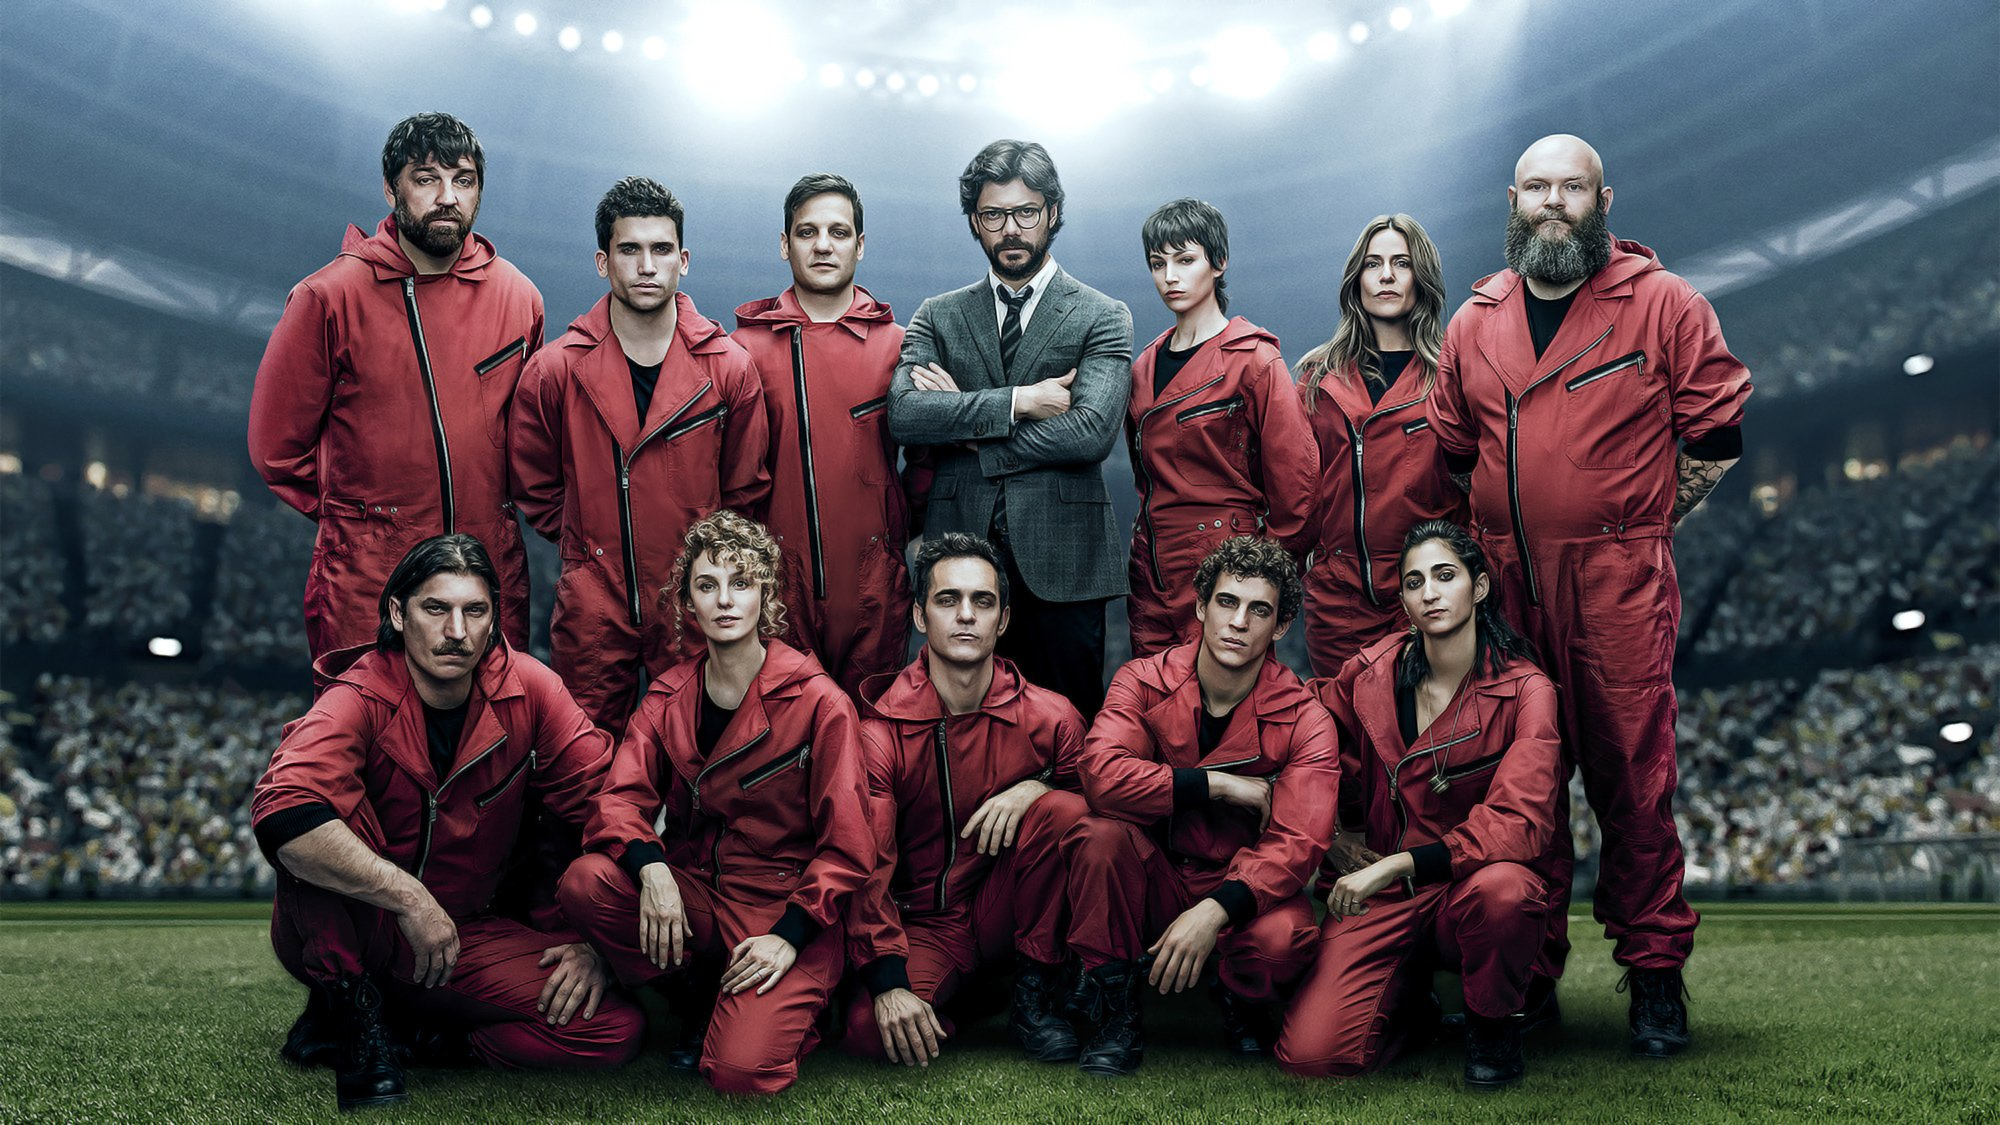 Money Heist Season 5 Cast Details Who is coming back